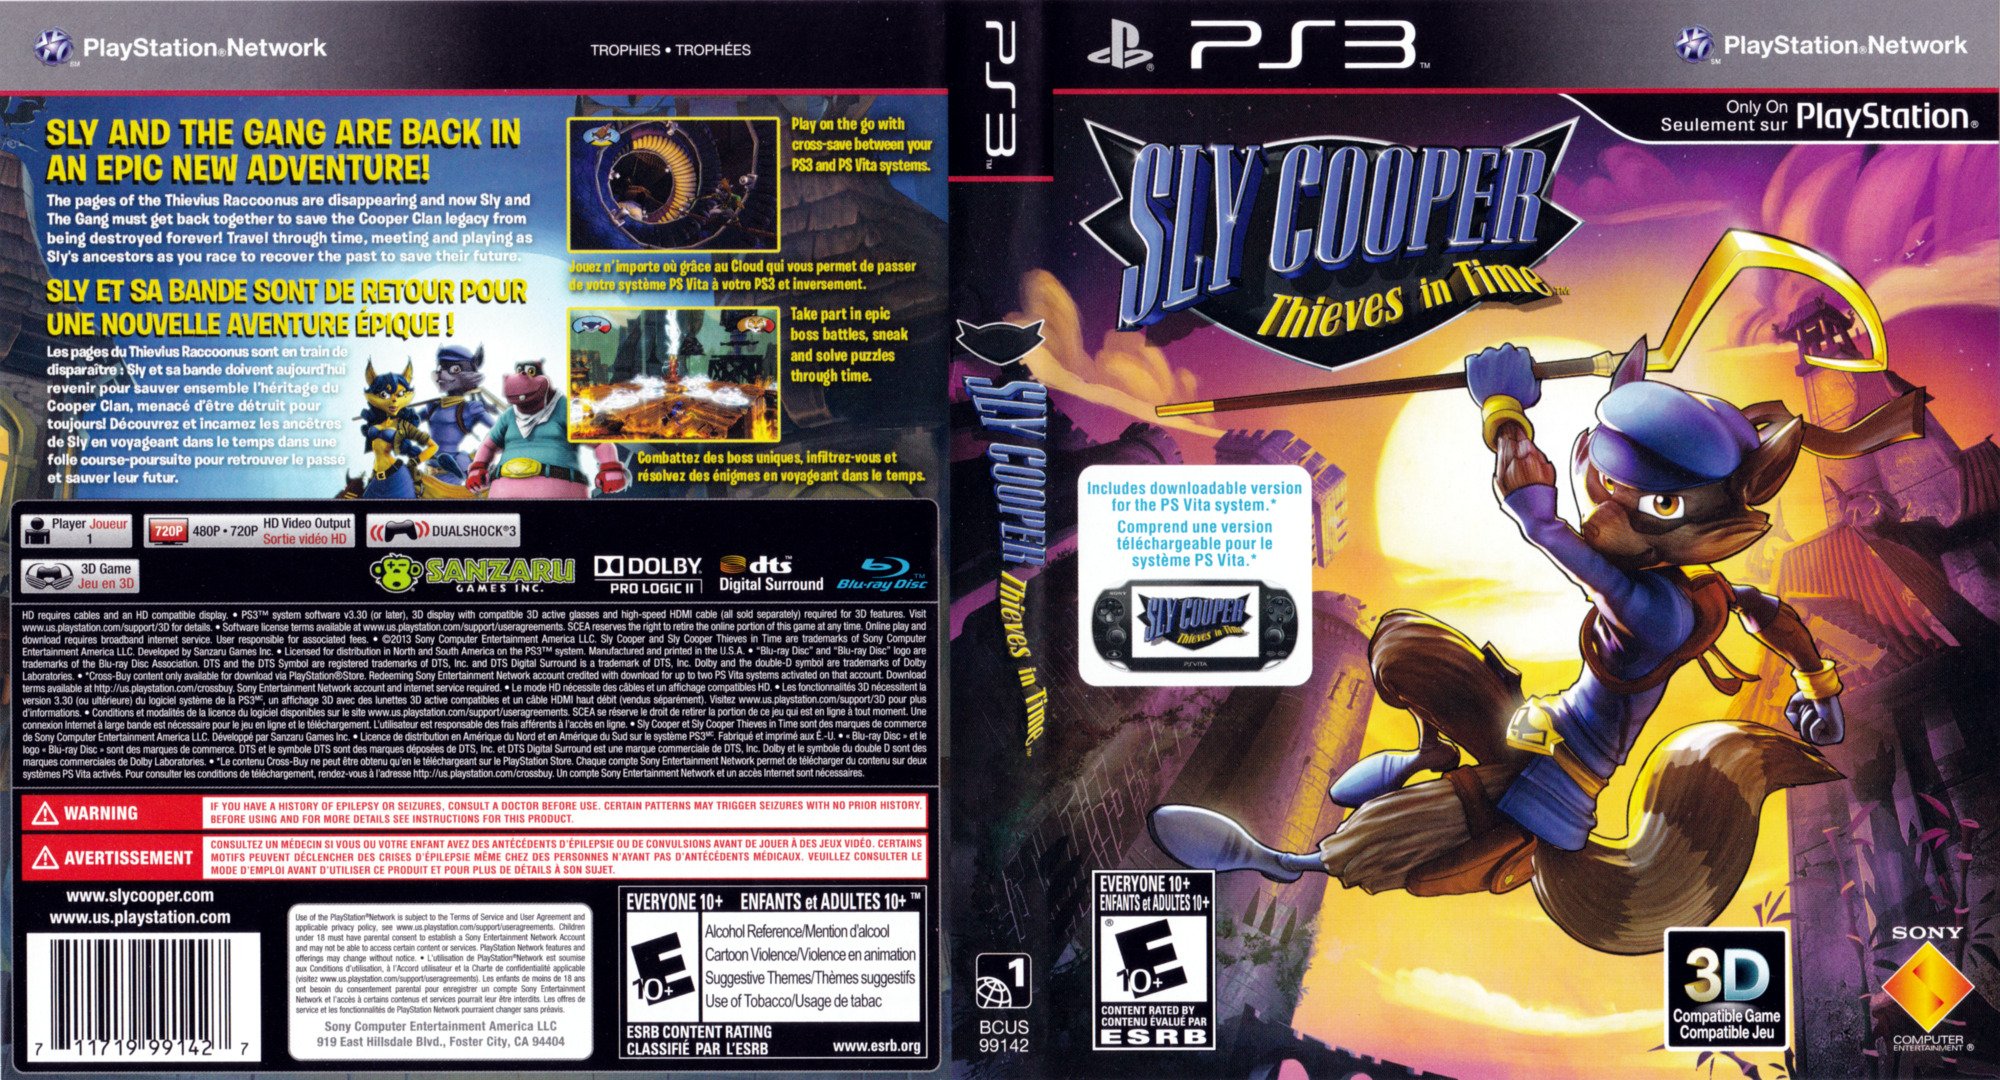 Sly Cooper: Thieves in Time PS3 coverfullHQ (BCUS98247)